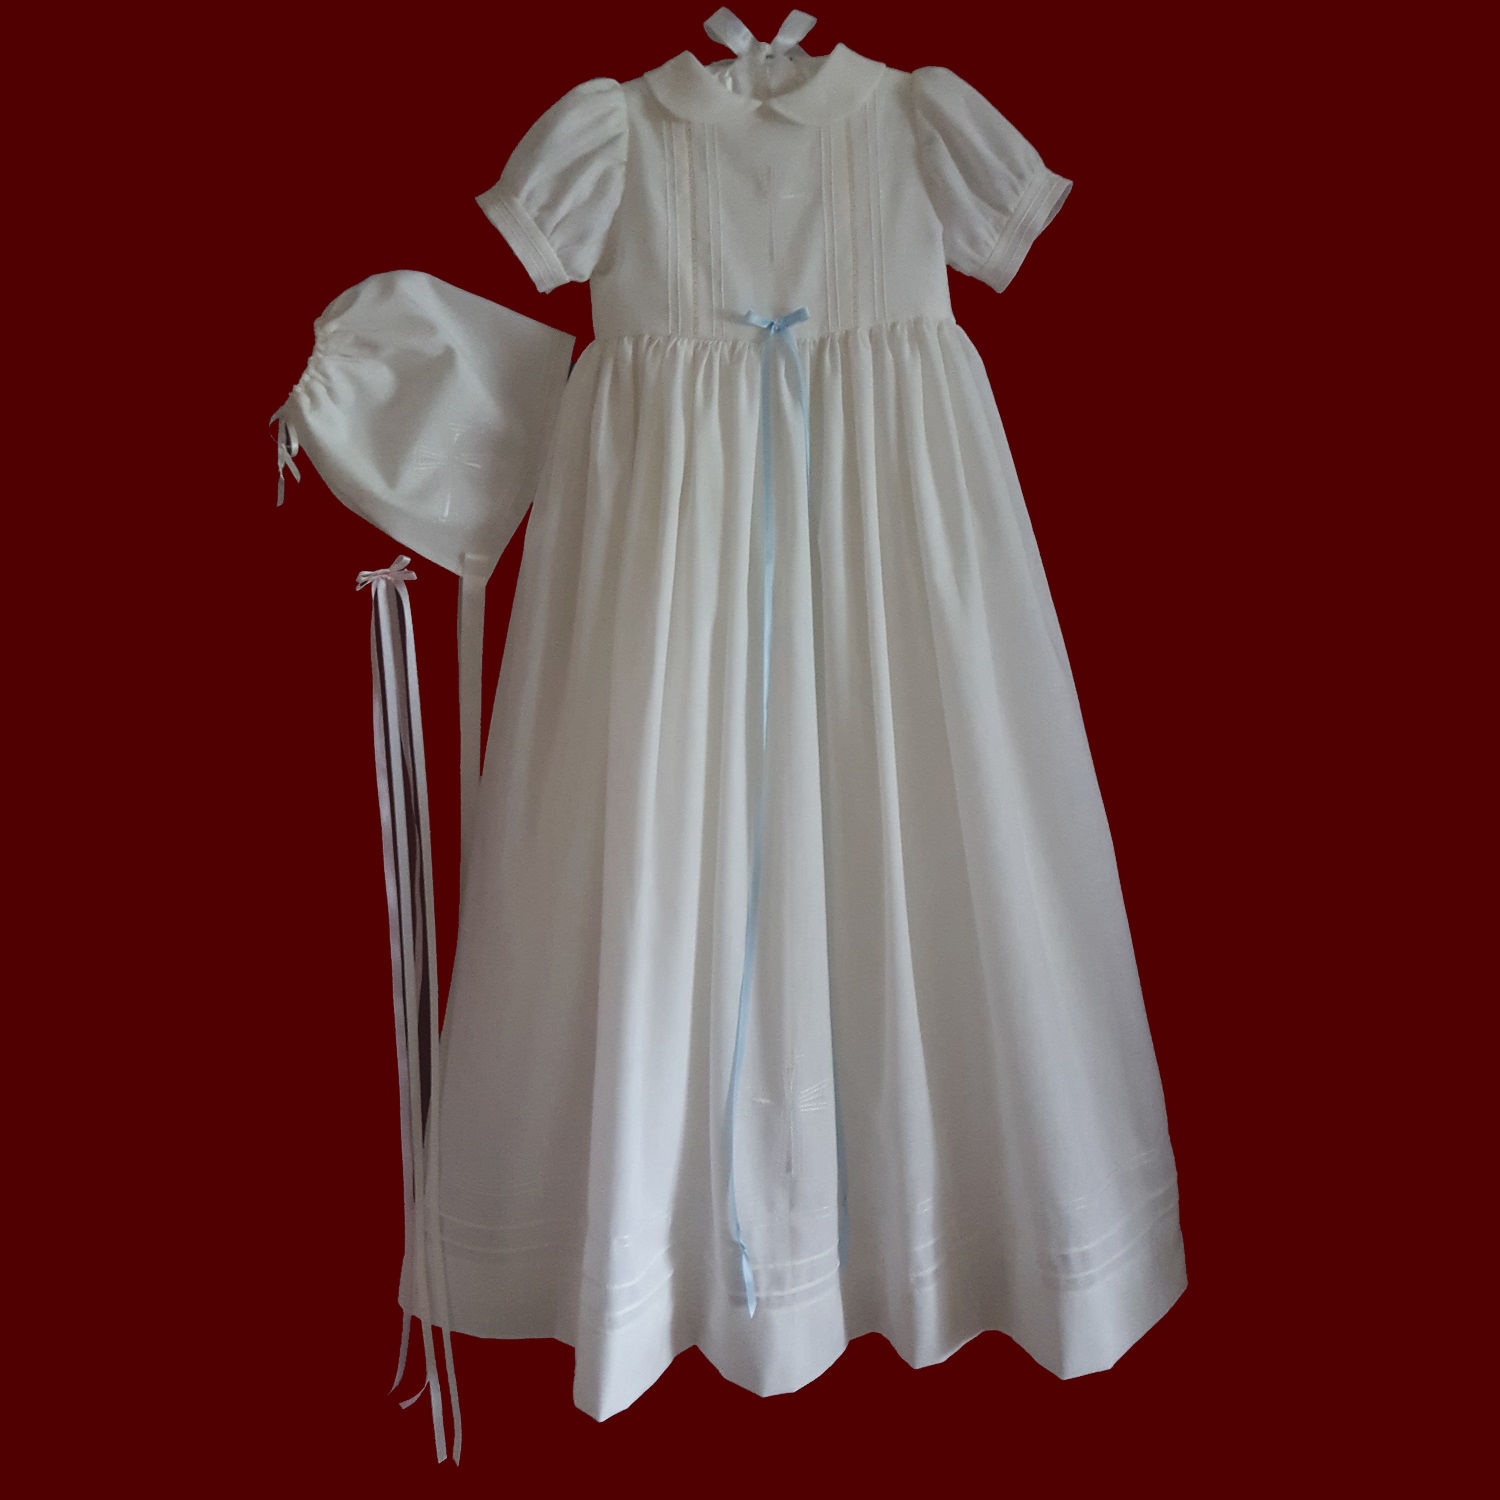 Unisex Christening Gown with Embroidered Cross, Personalized Slip & Bonnets